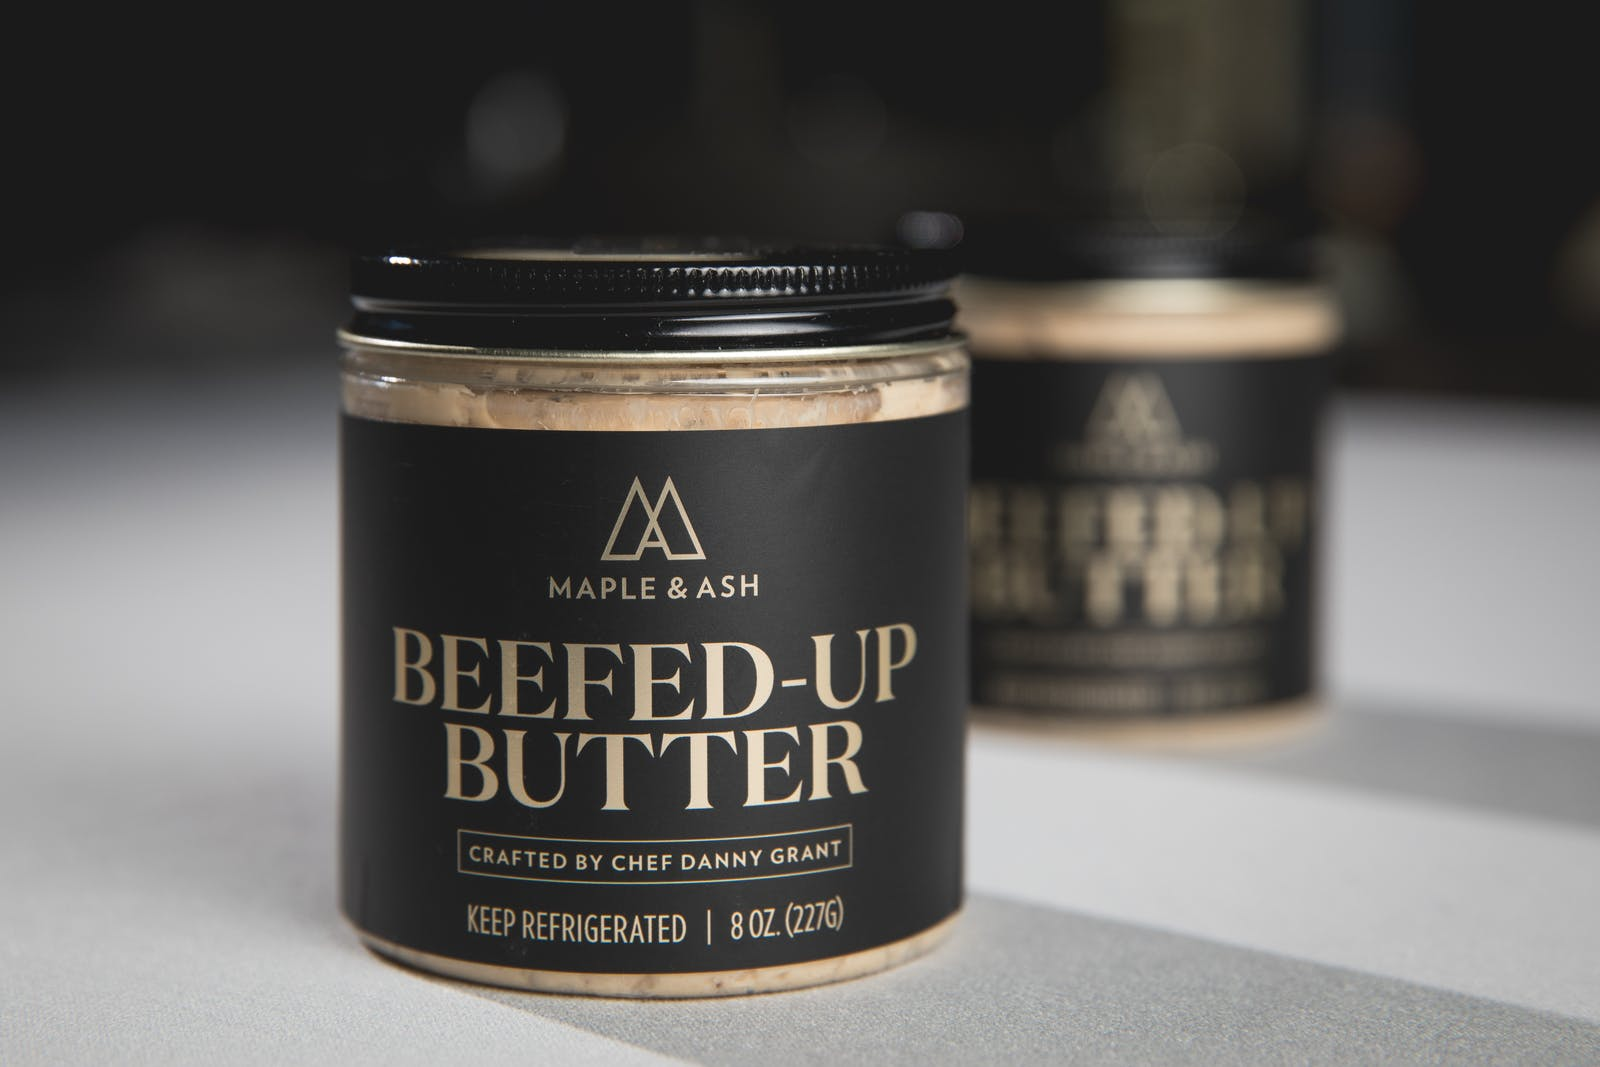 Maple & Ash's Beefed-Up Butter